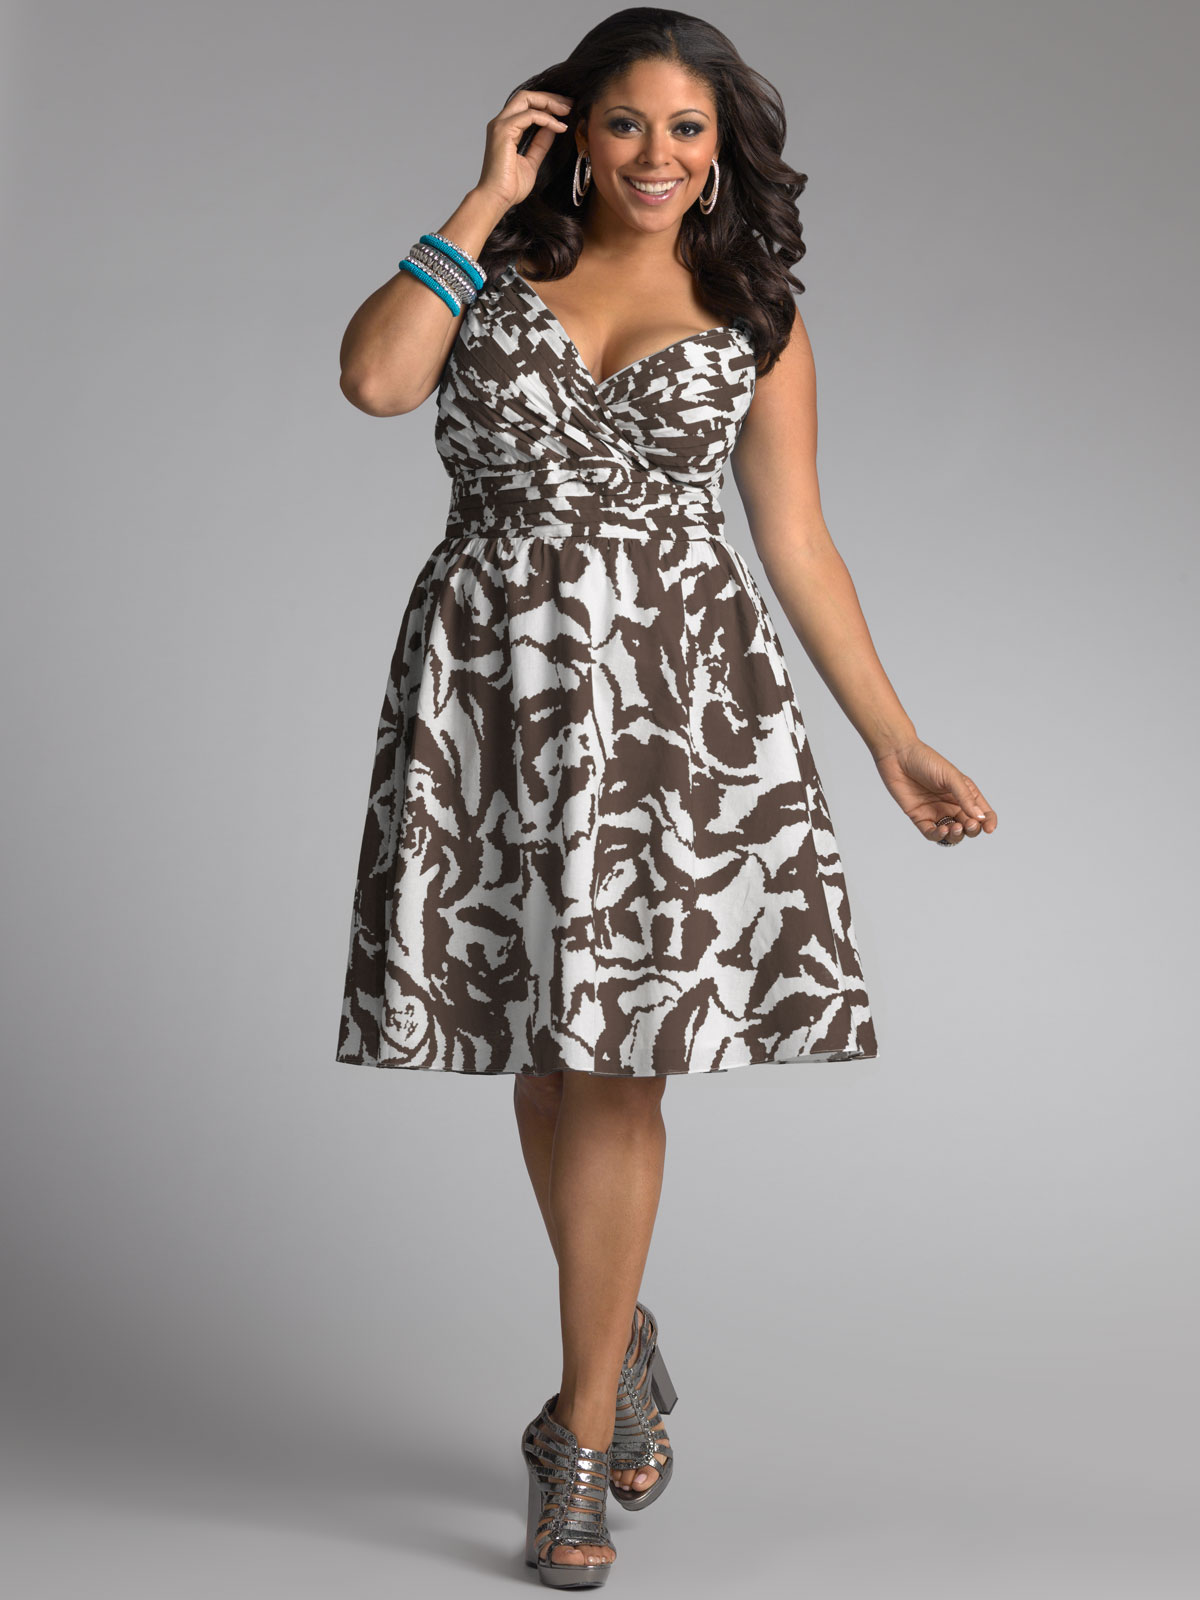 plus-size-dresses-for-women